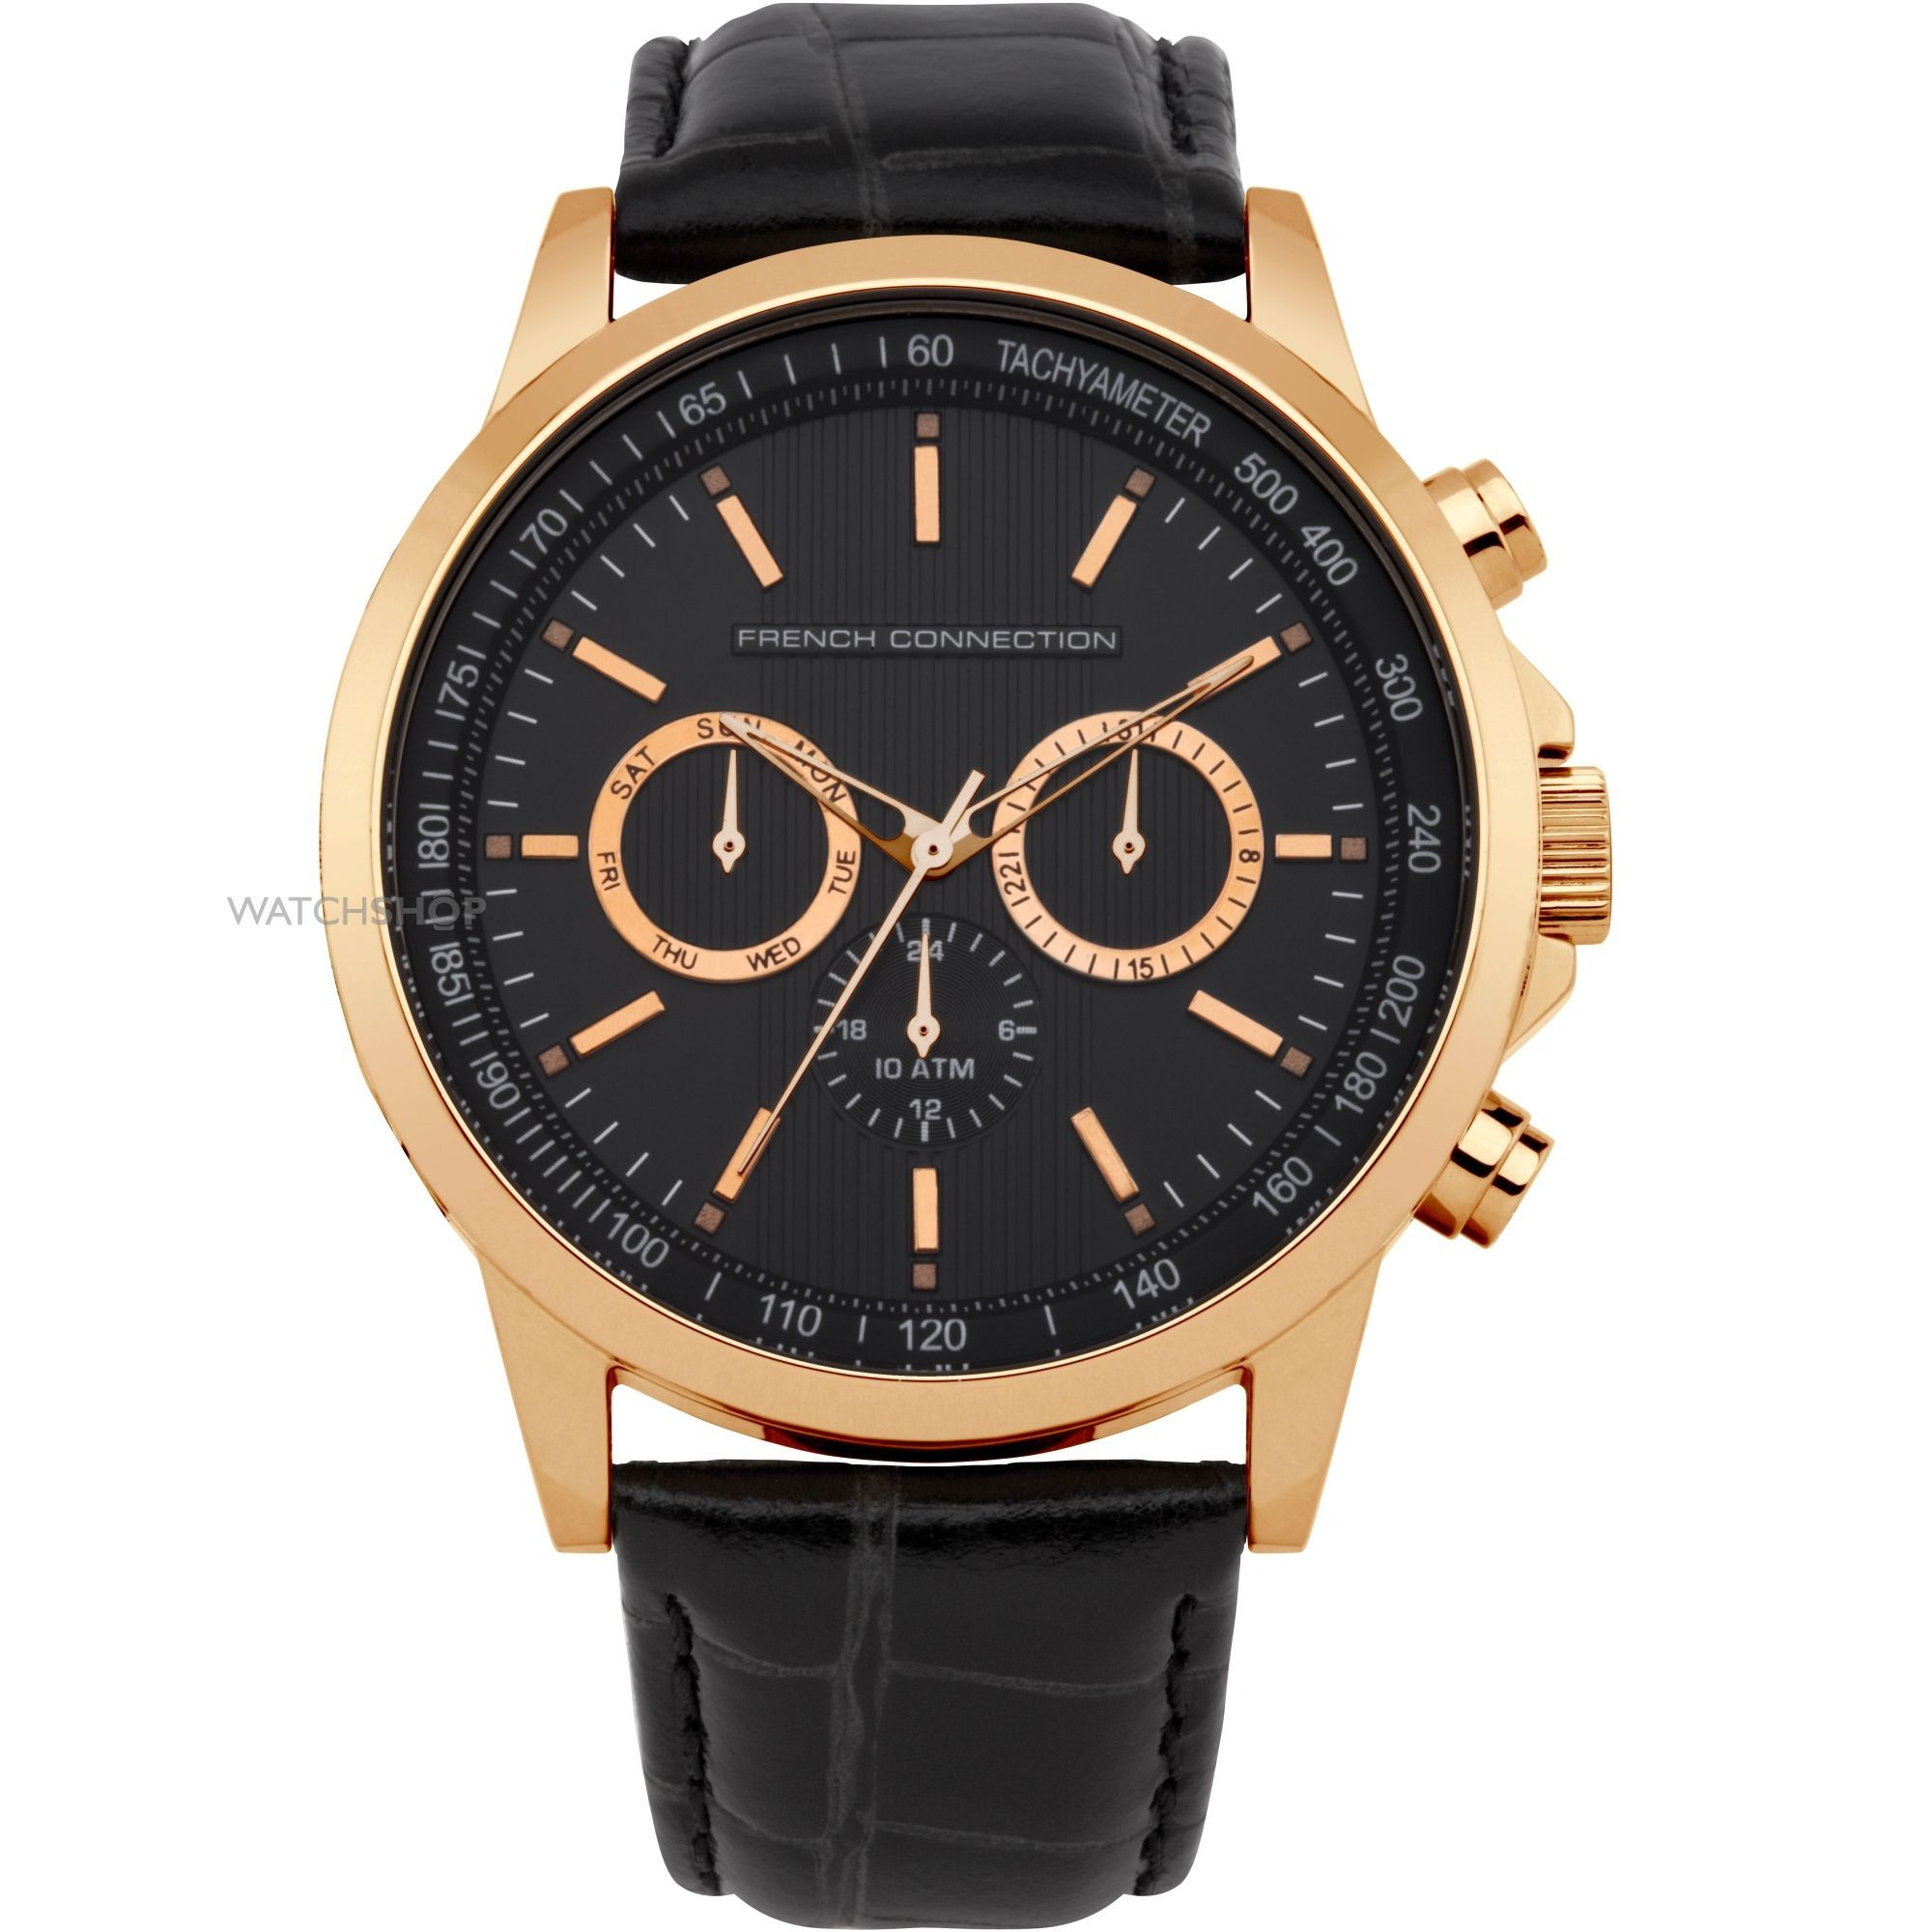 westwood watch designer fashionable mens silver vivienne fashion shop jewellery men tan leather watches portland gallery s and